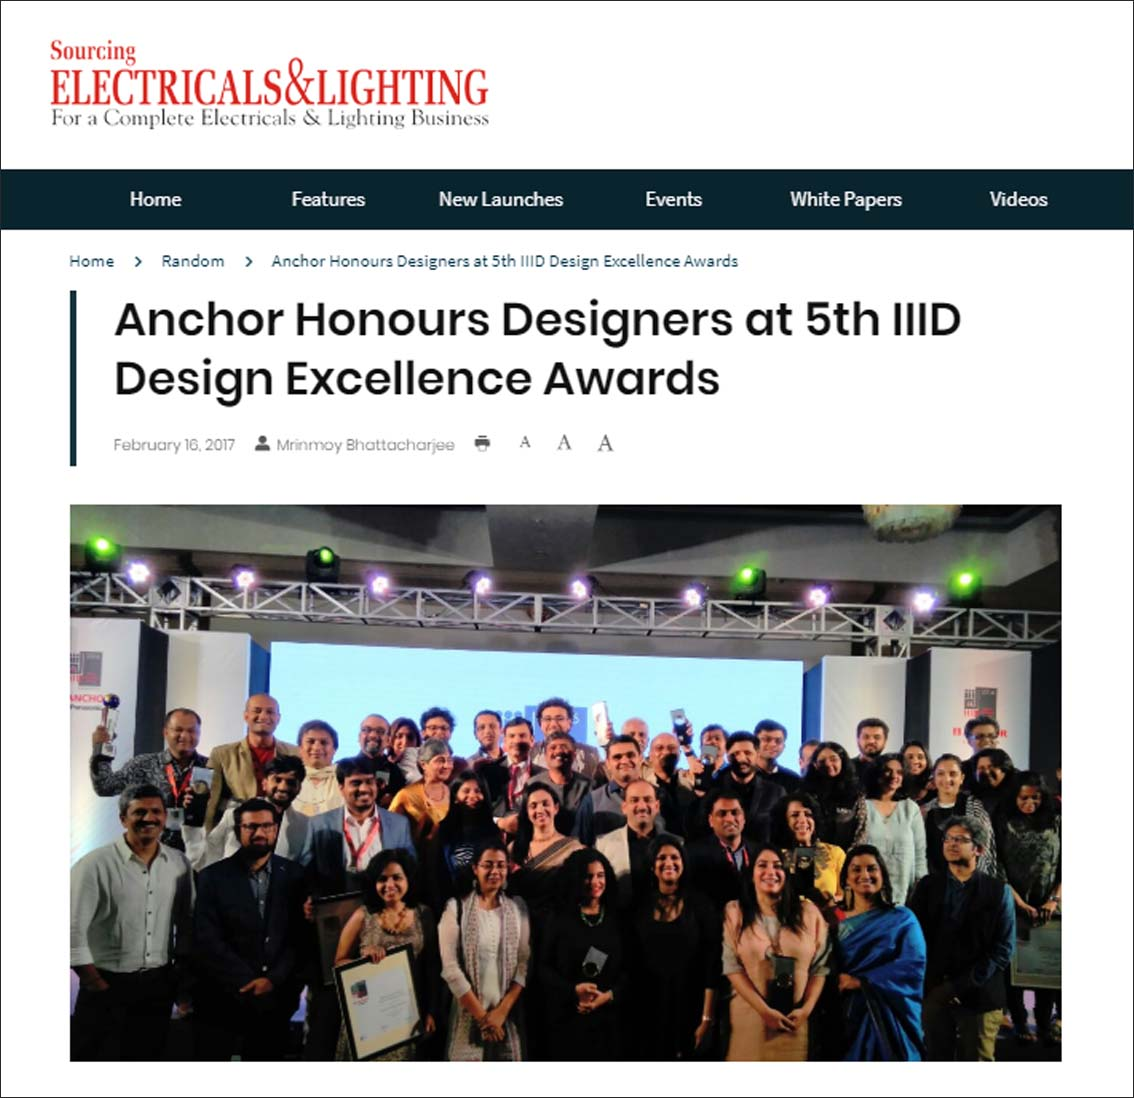 Anchor Honours Designers at 5th IIID Design Excellence Awards, Sourcing Electricals and Lighting - February 2017